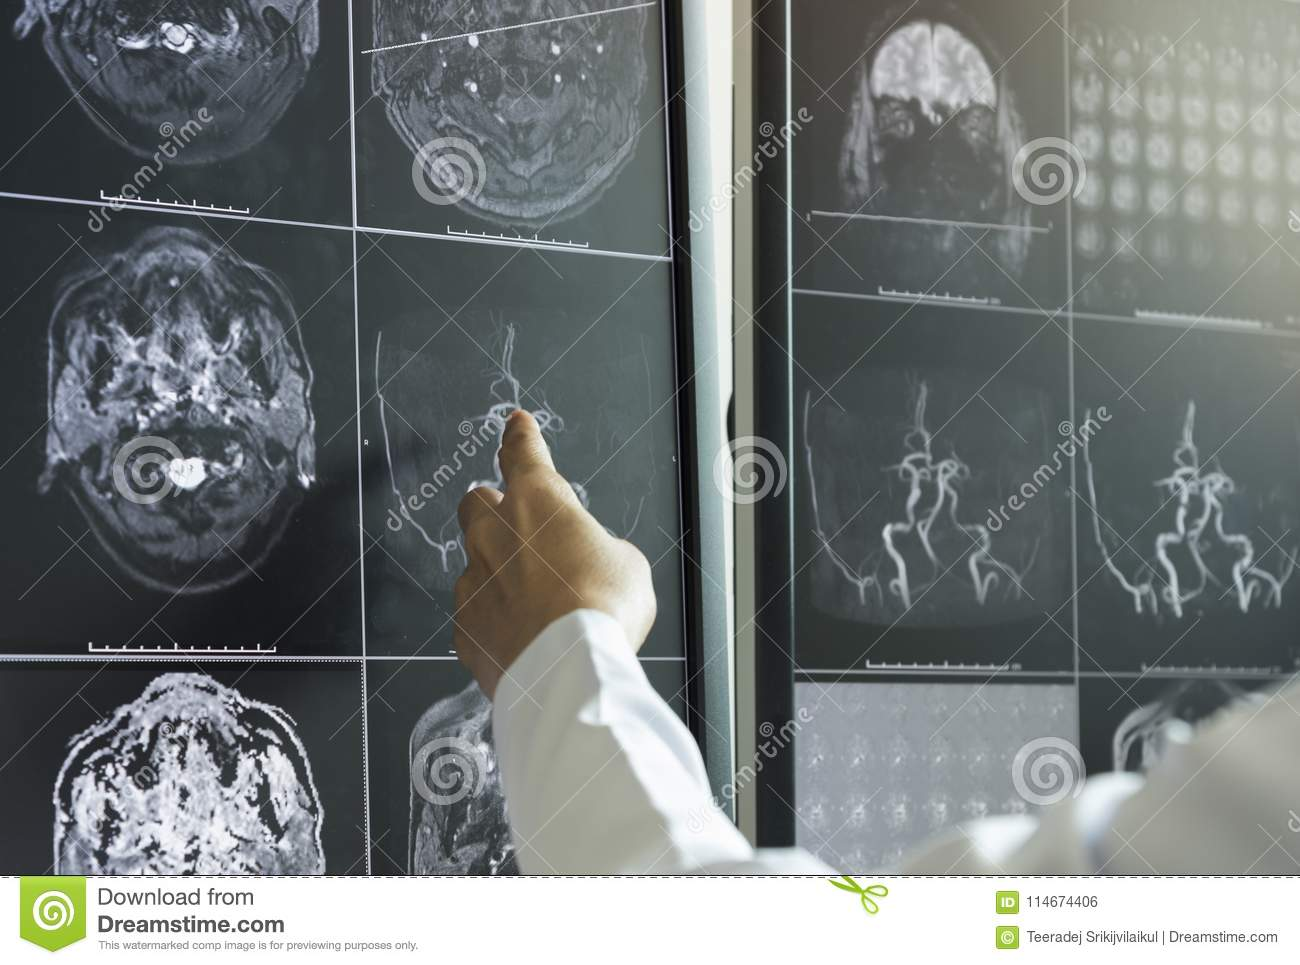 Doctor Pointing To Brain Anatomy On MRI Image Stock Photo - Image of ...